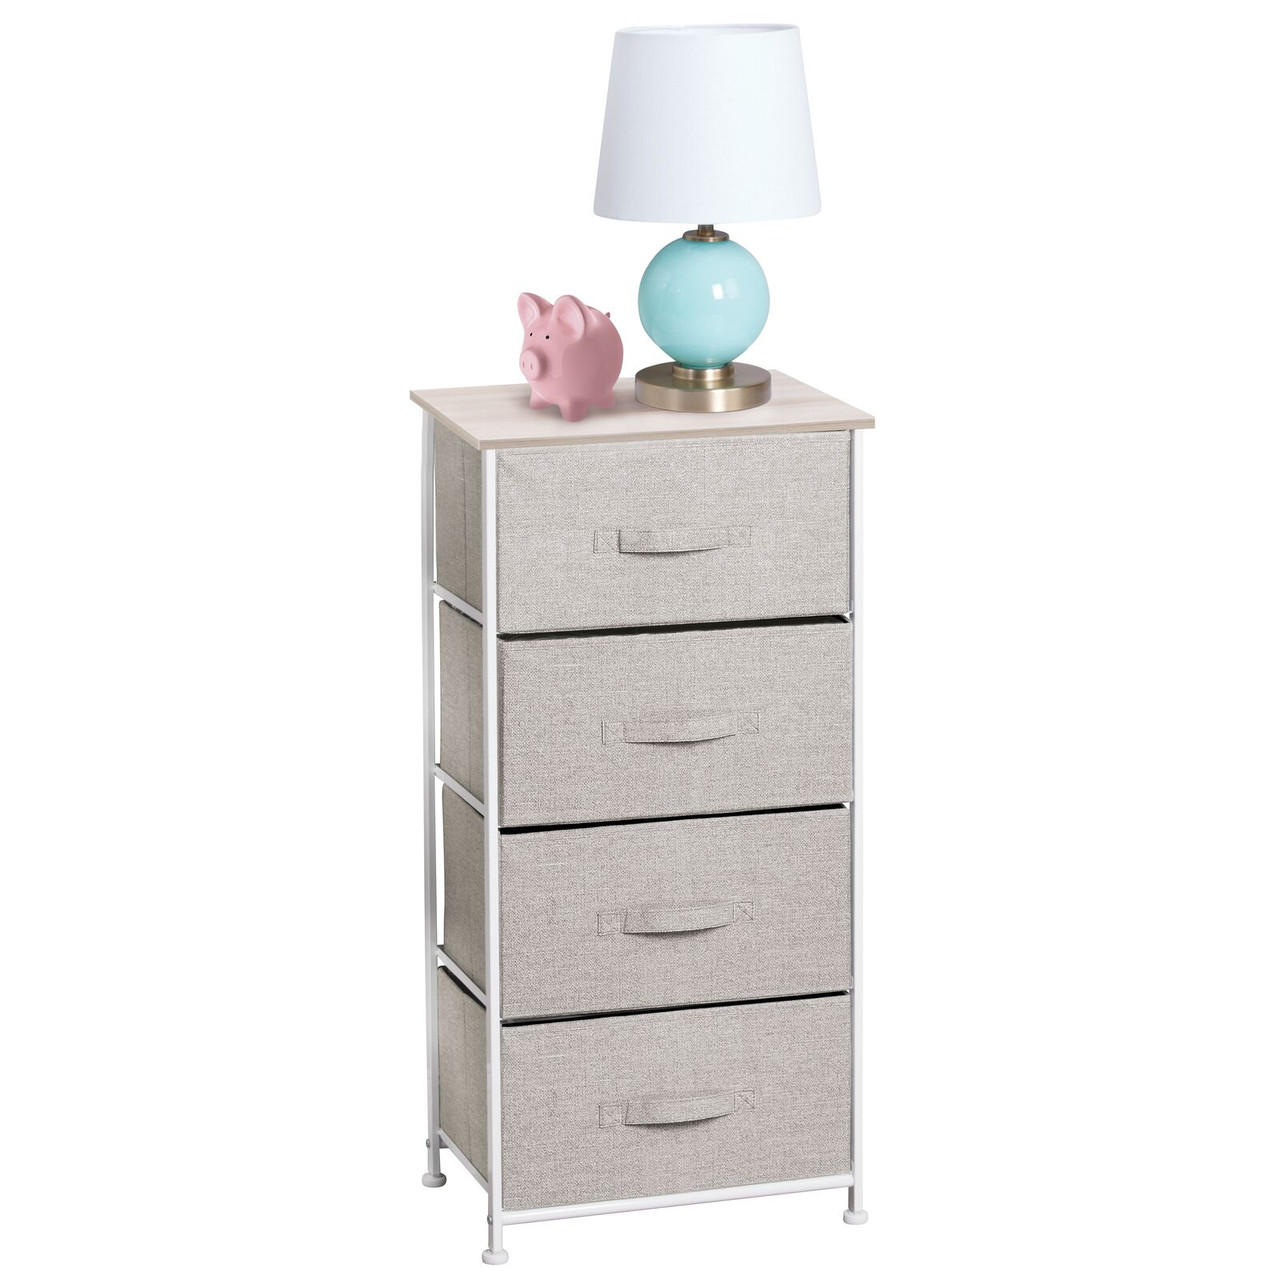 Nursery Dresser Tower for Bedroom Wide Dark Indigo Hallway Closets ROMOON Dresser Organizer with 5 Drawers Fabric Storage Drawer Unit Entryway